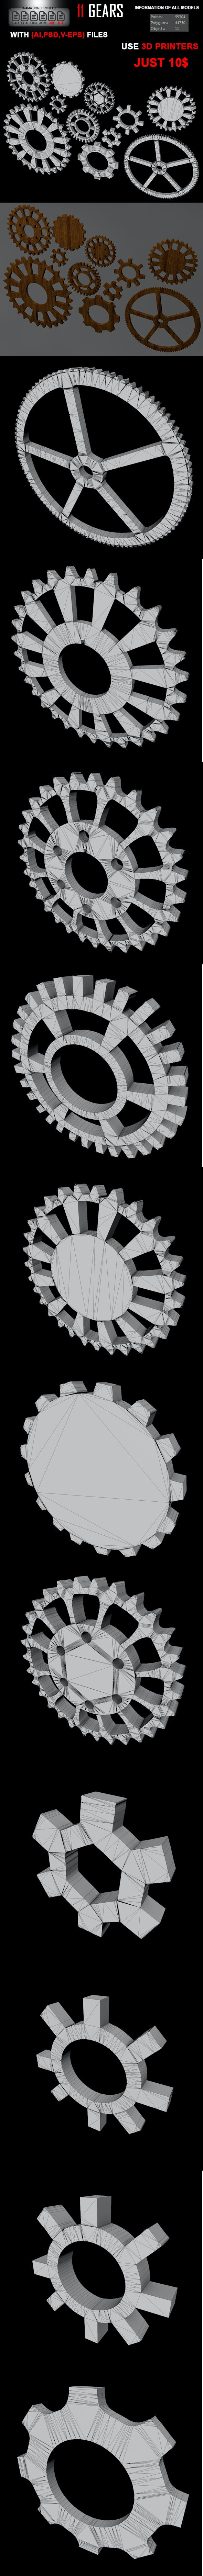 11 Gears 3D Model With (AI, PSD) Files FULL - 3DOcean Item for Sale